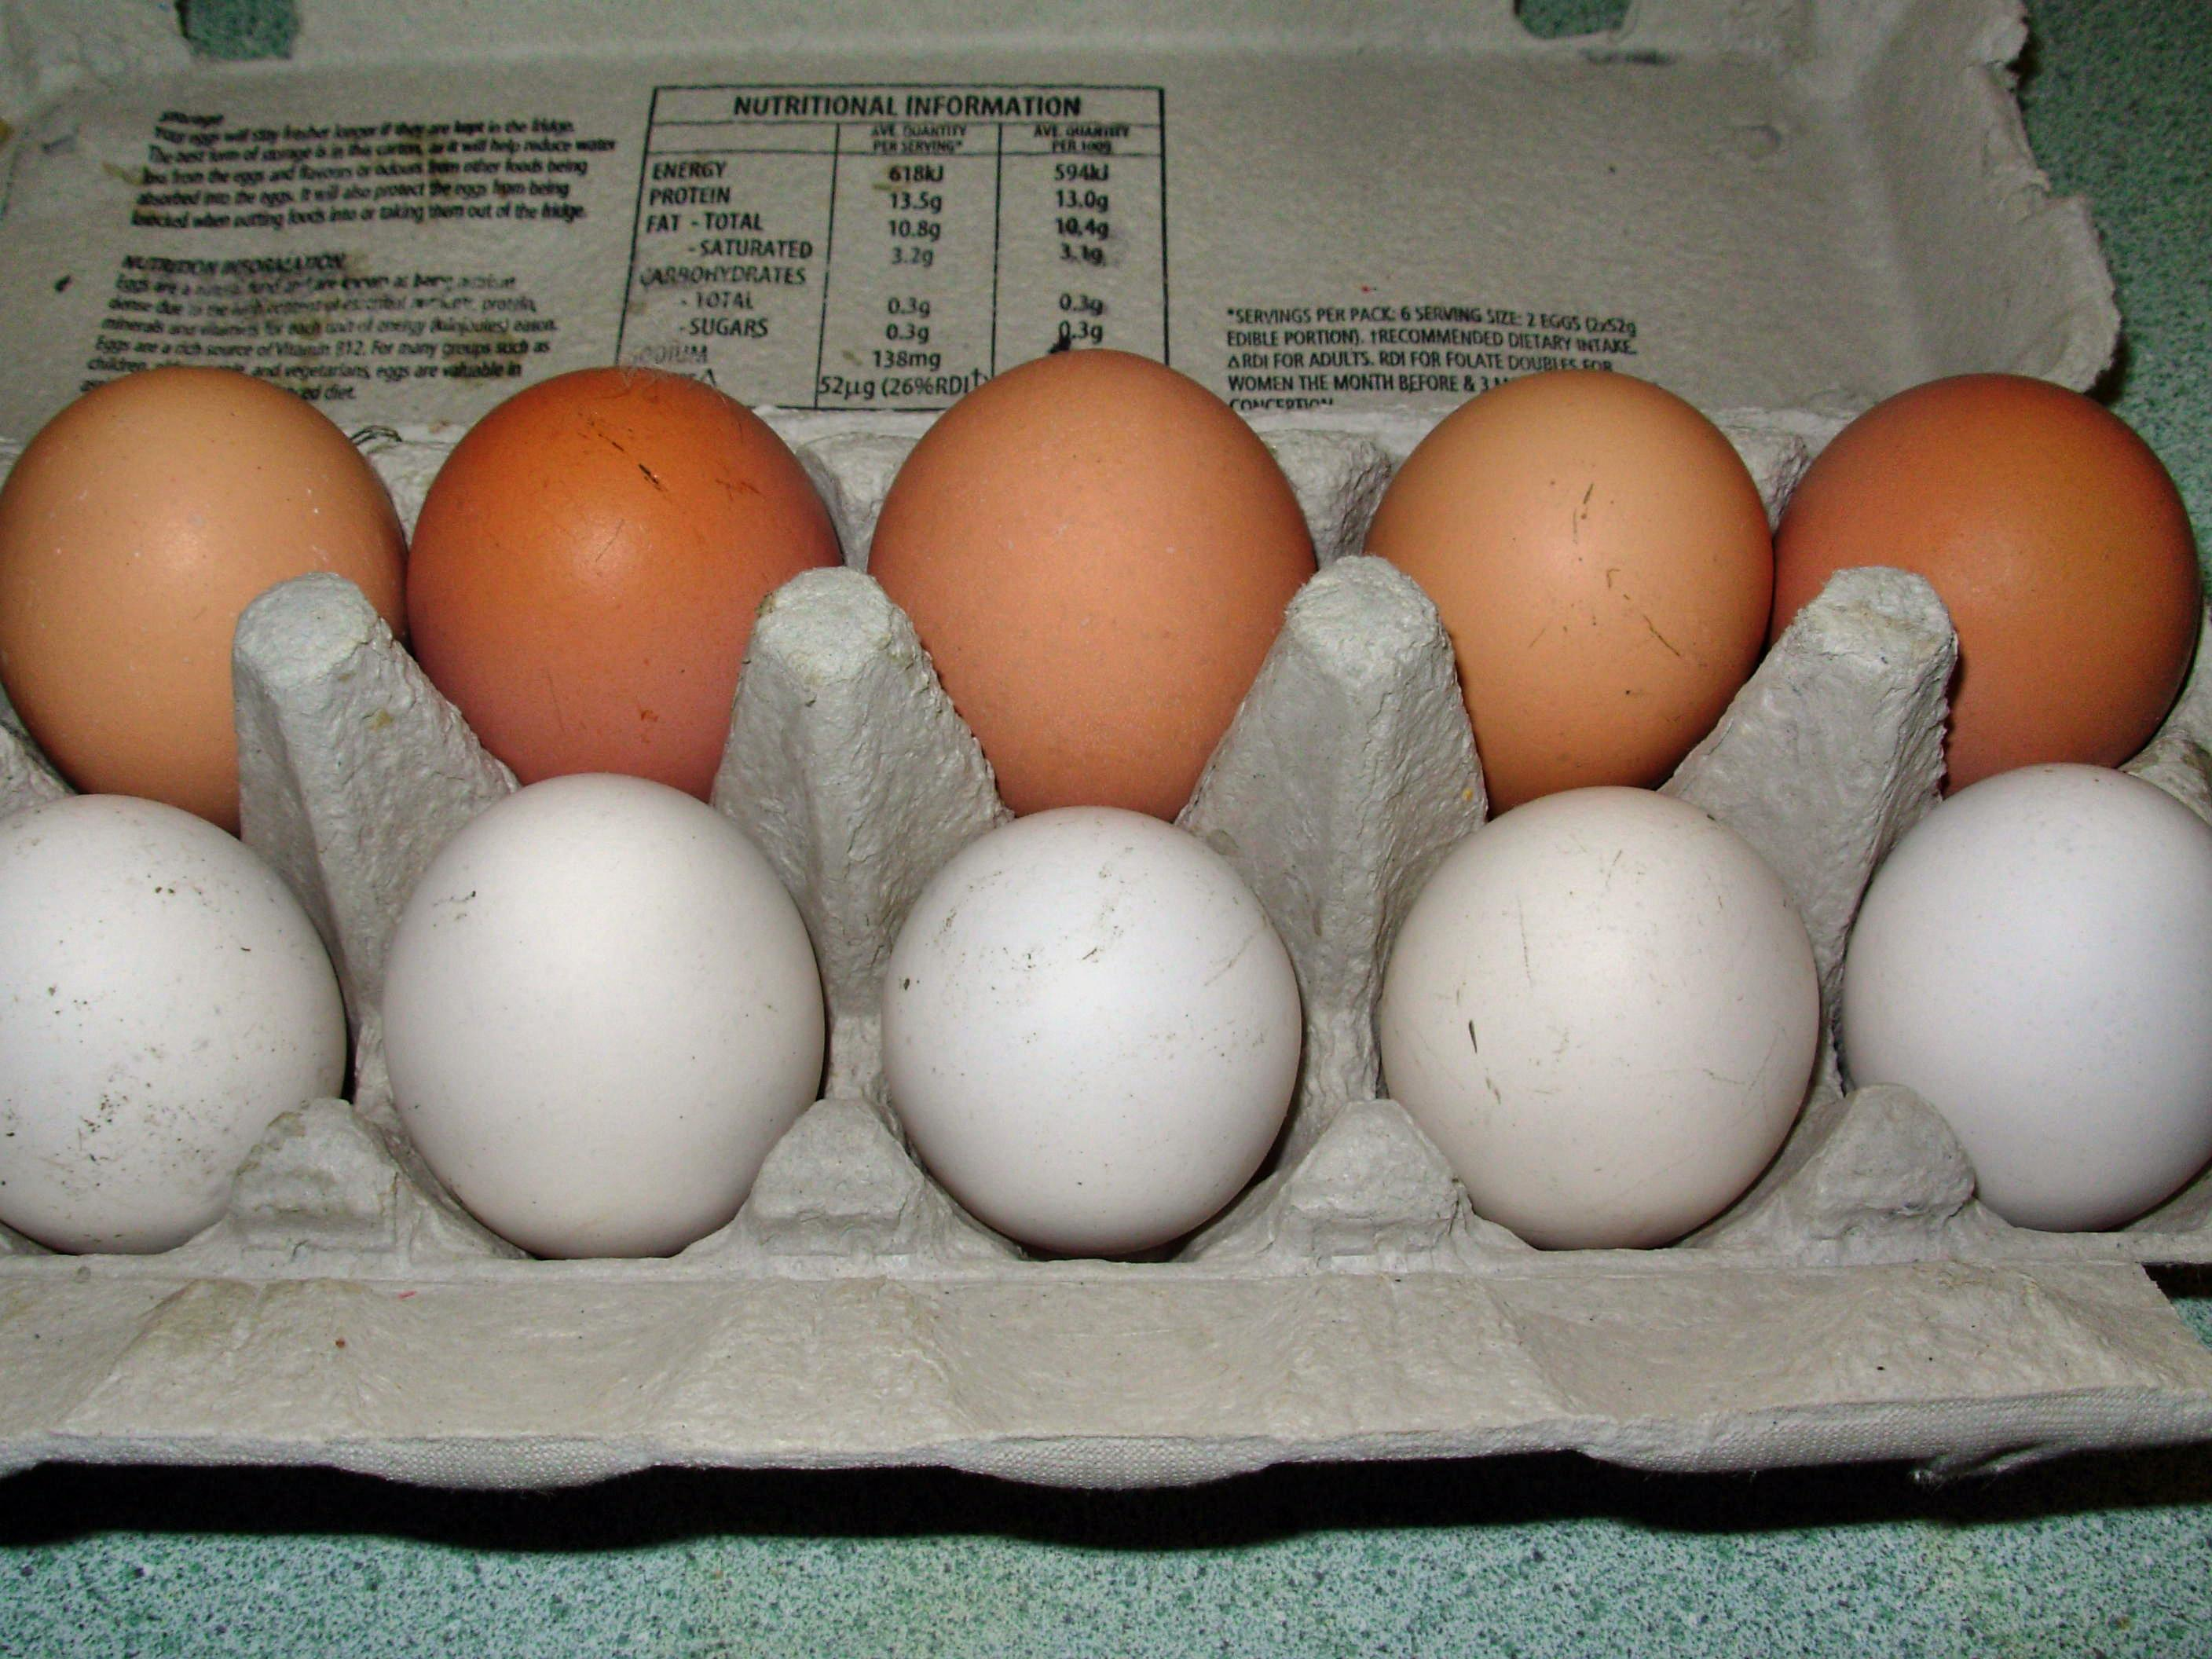 This should be eggs-1.jpeg.  Is it missing?